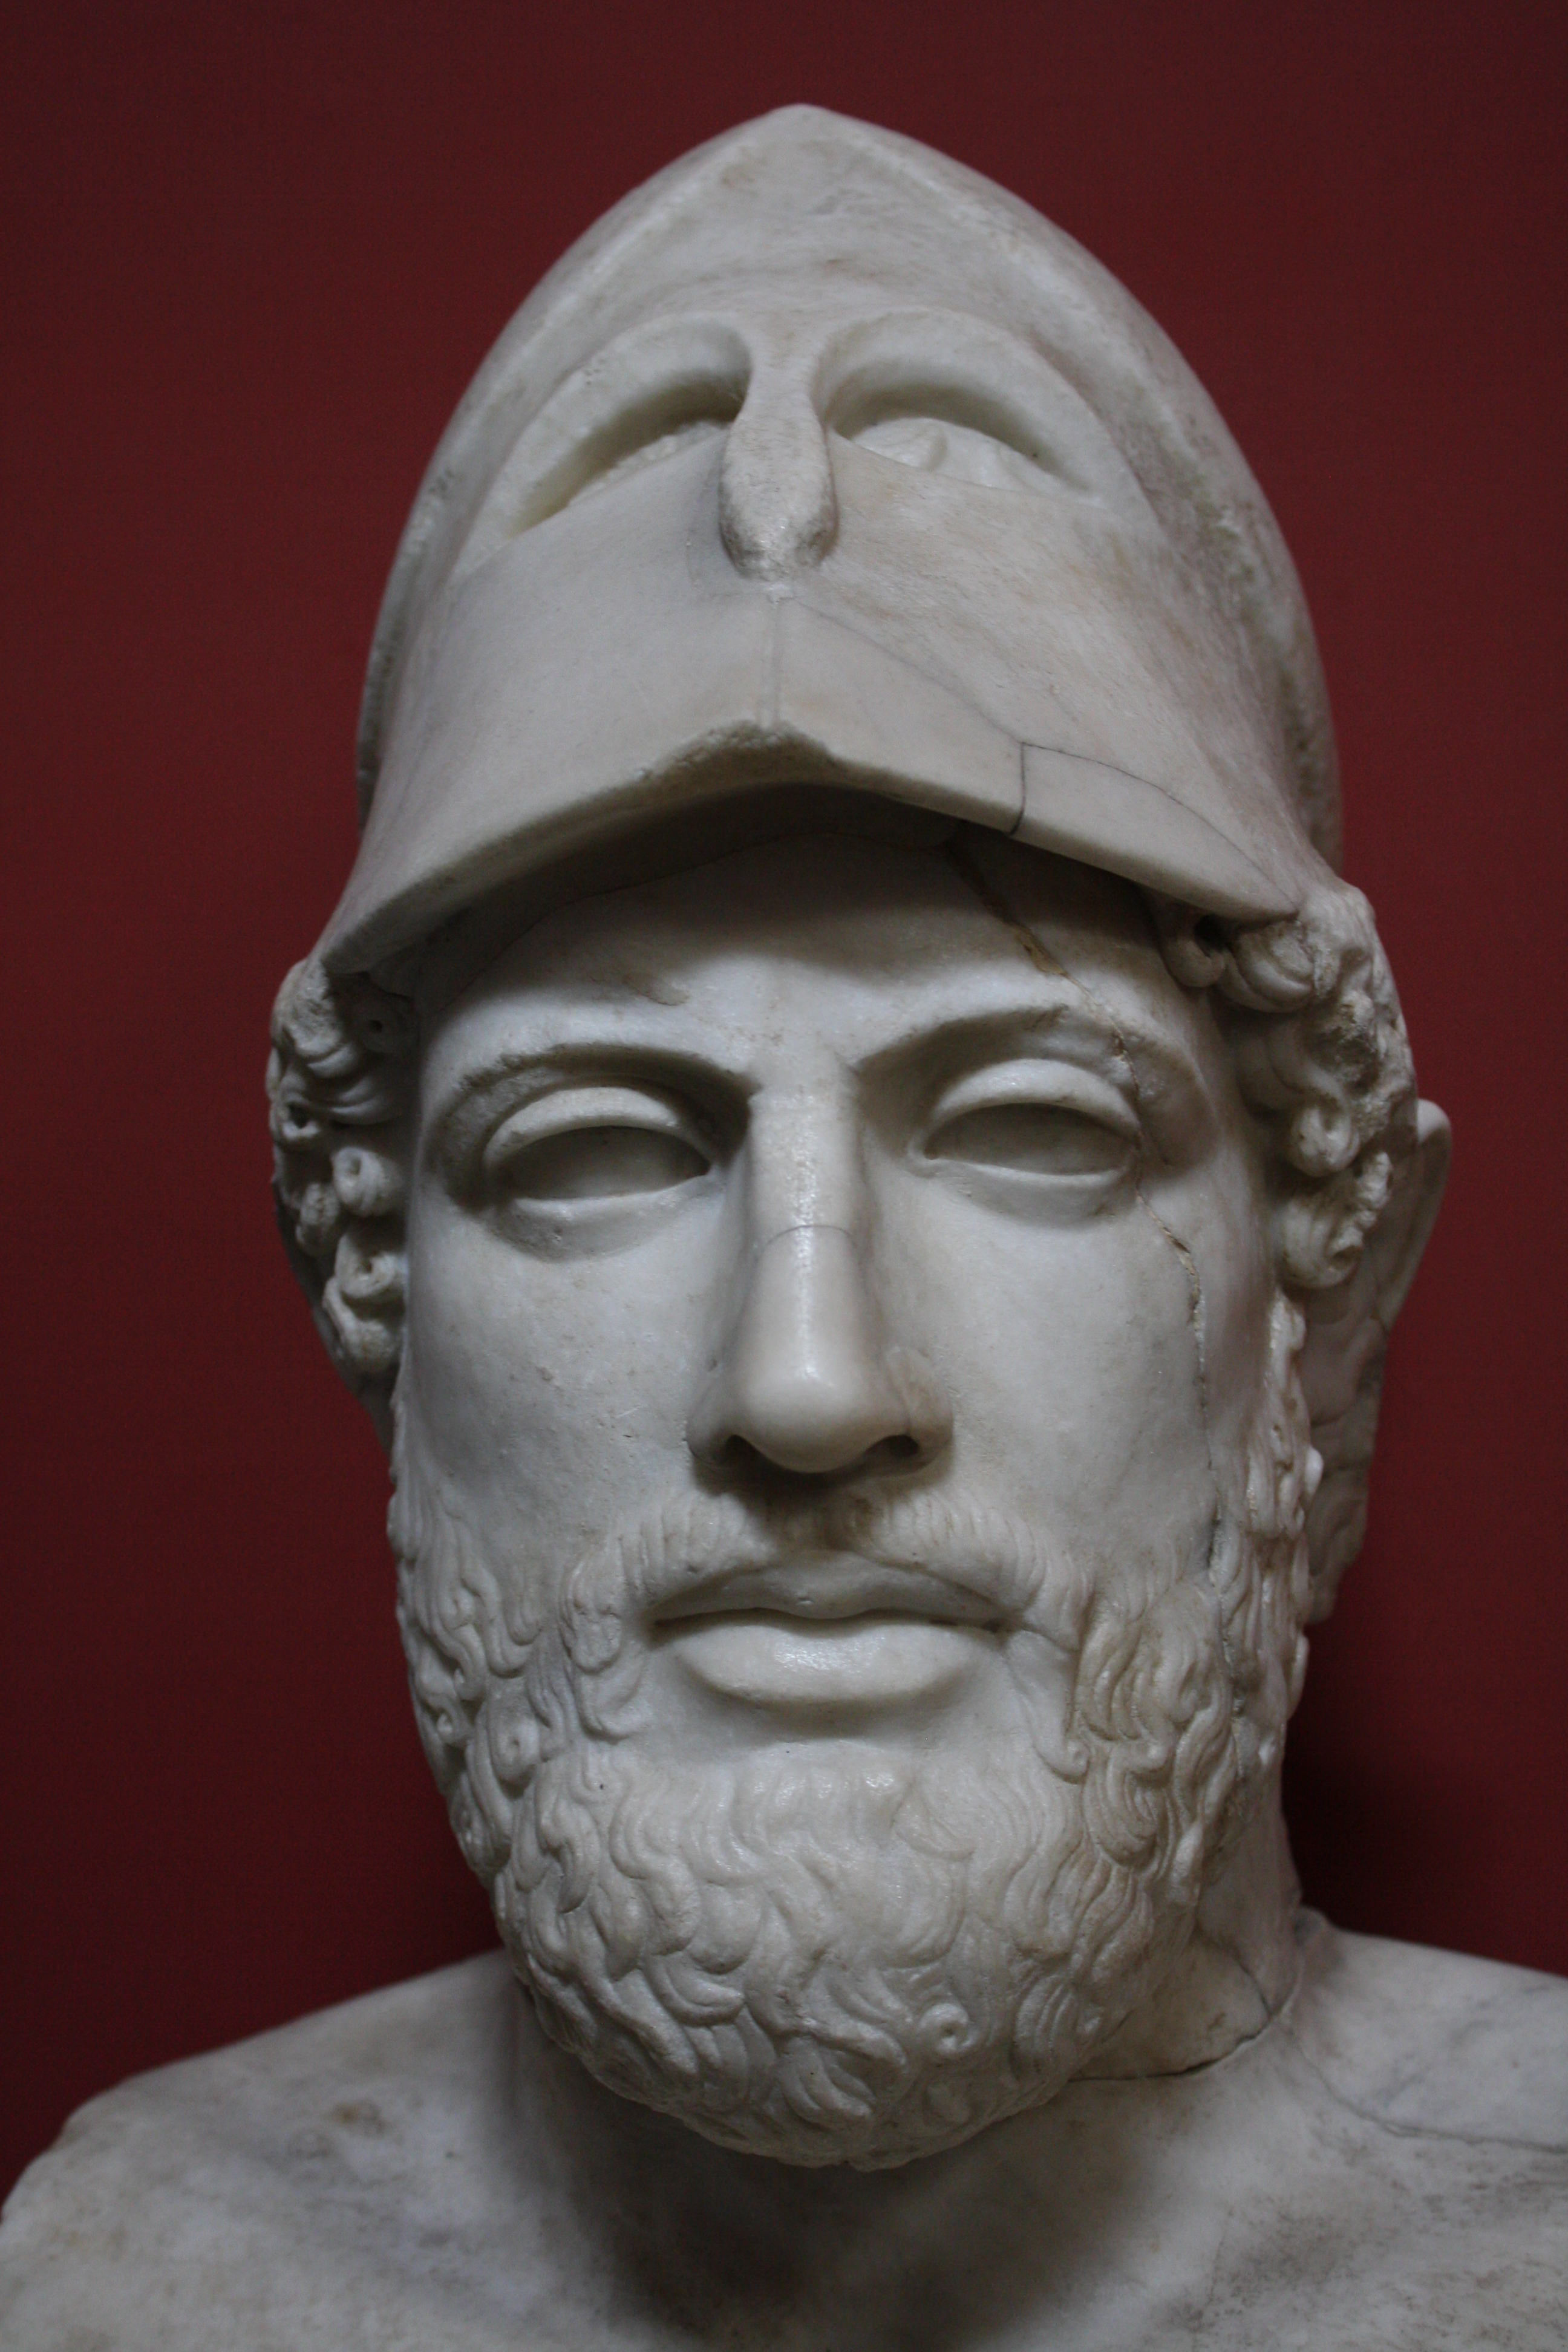 Pericles' Funeral Oration Analysis: Athenian Democracy